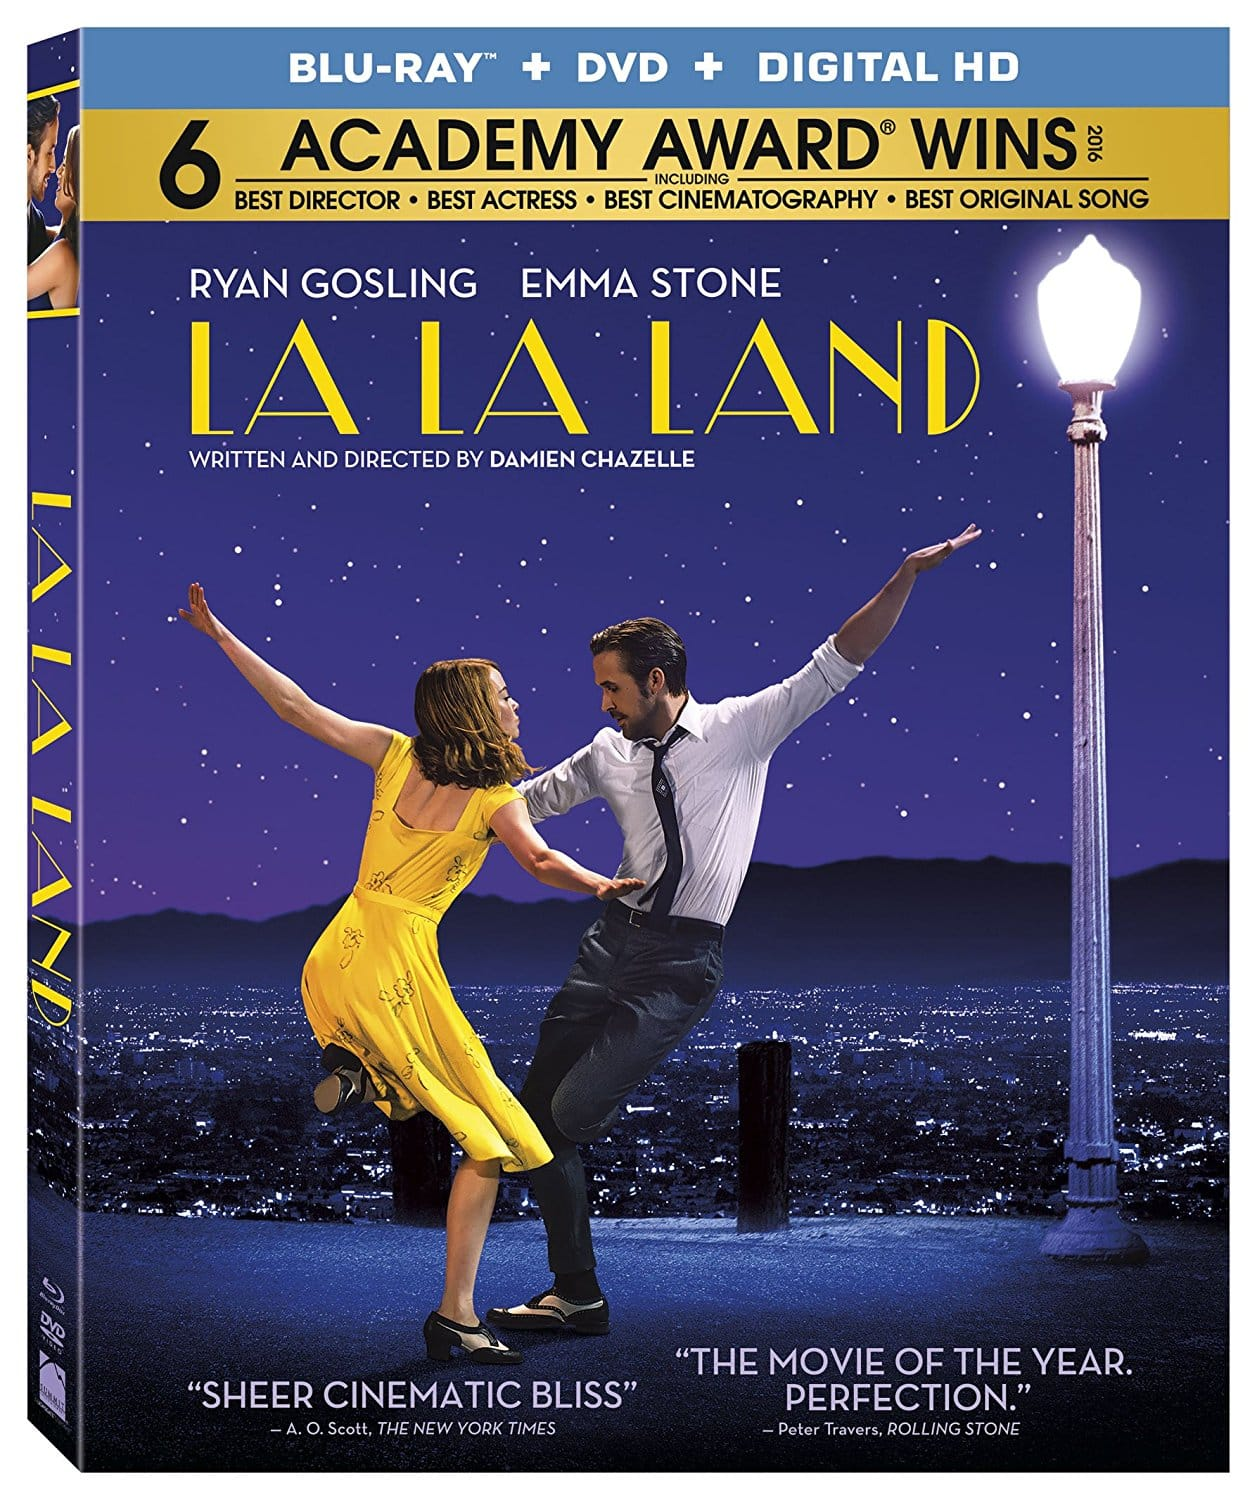 La La Land (Blu-ray + DVD + Digital) for $9 + free shipping at Target right now